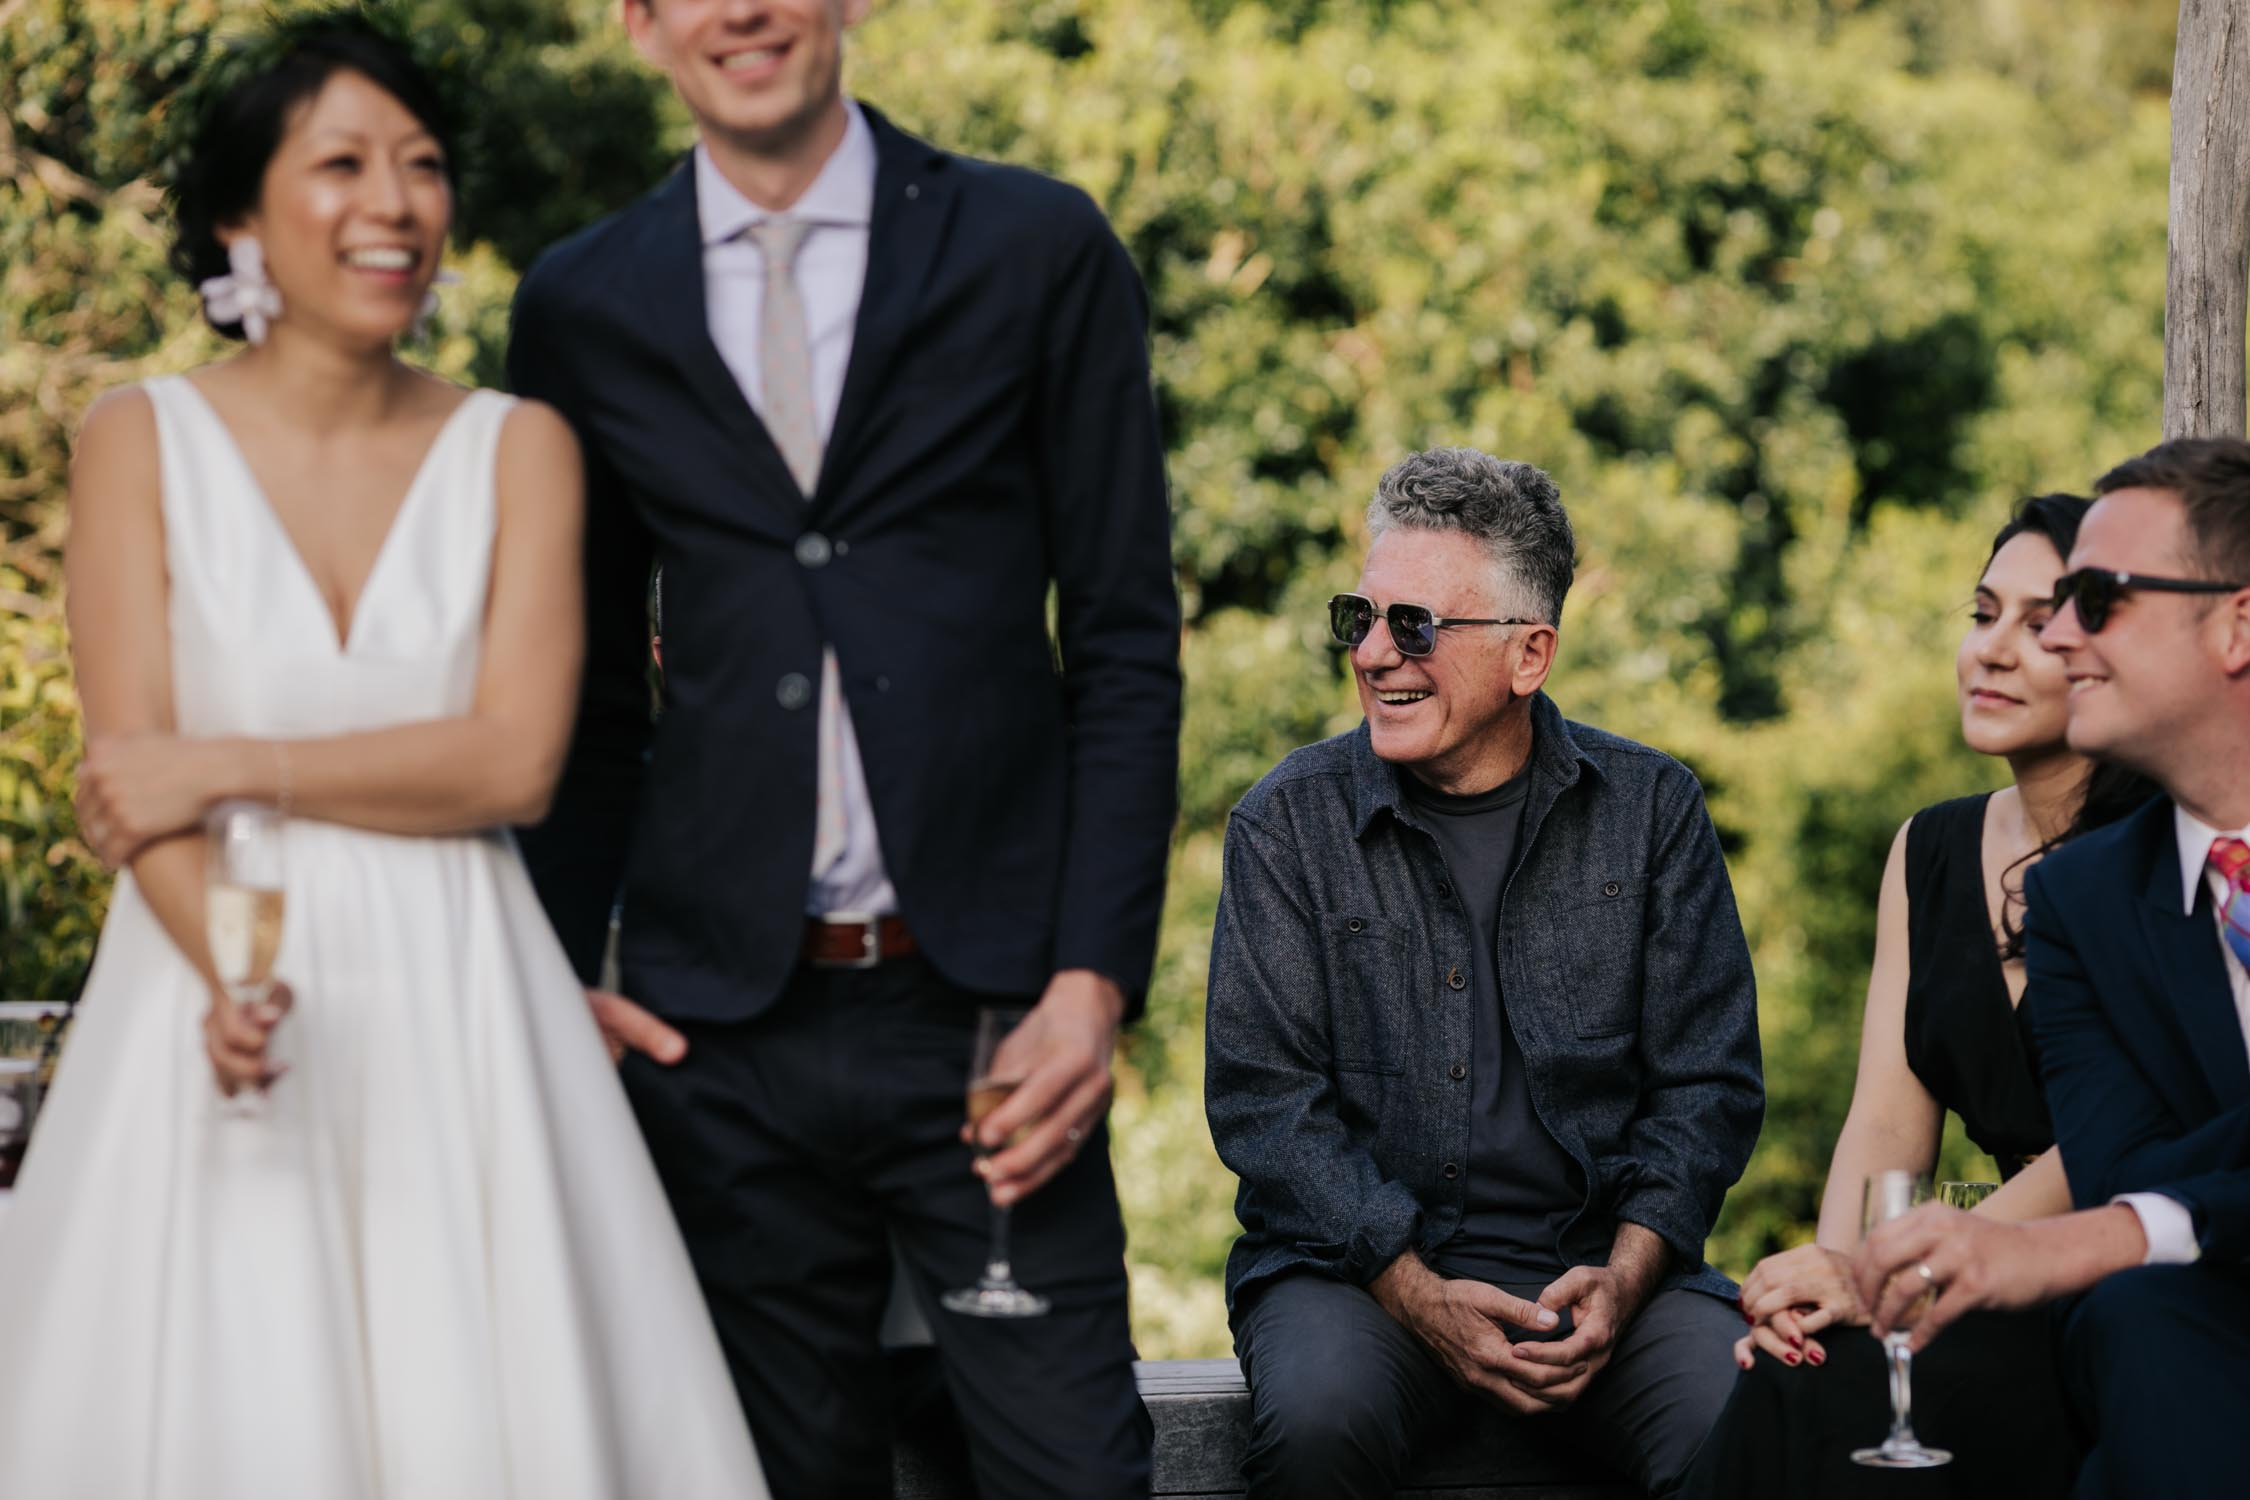 Guests Laughing During Speeches At Vancouver Wedding